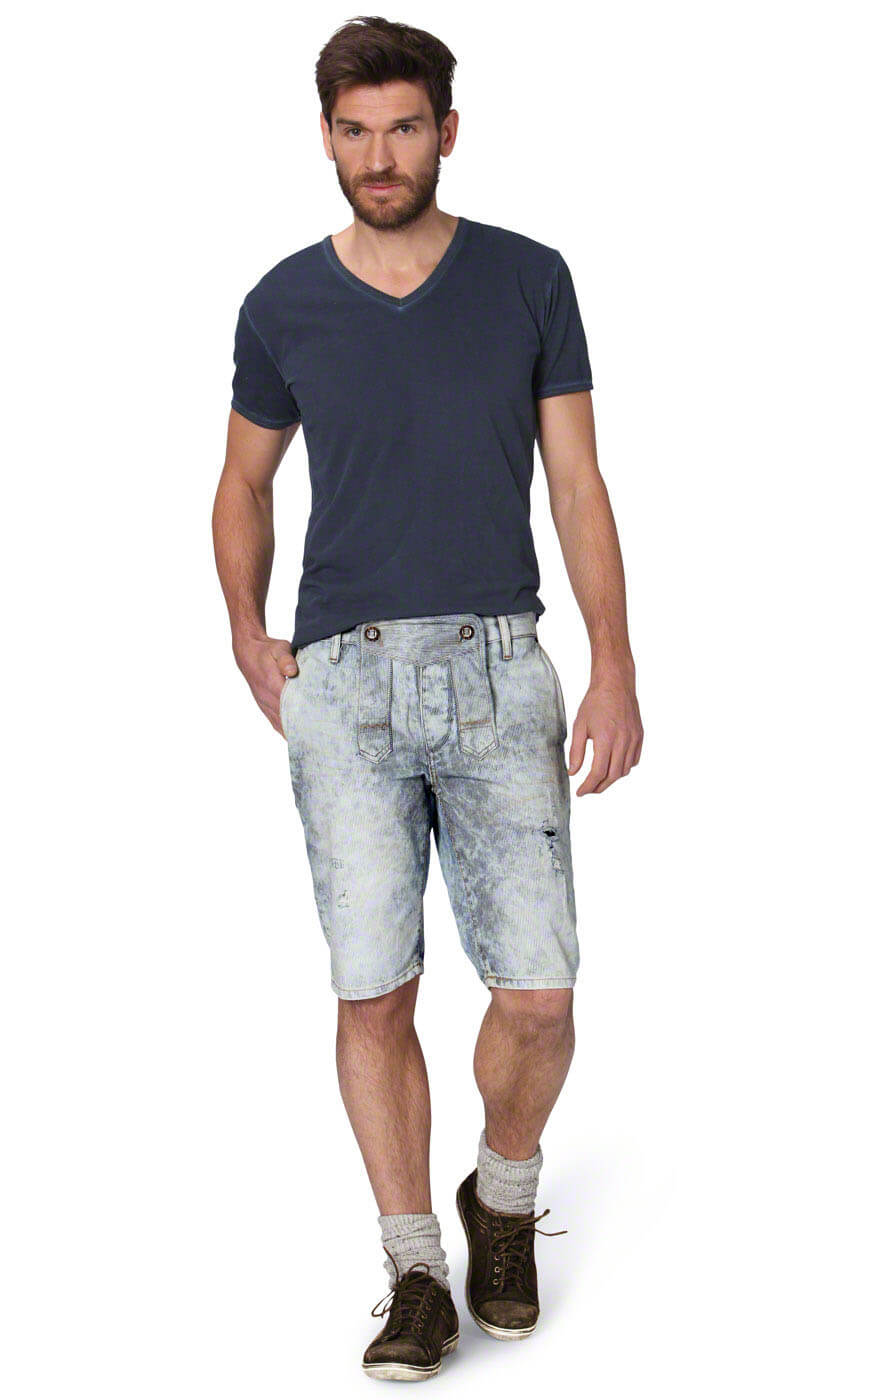 weitere Bilder von German Traditional shorts Cash bluevintage